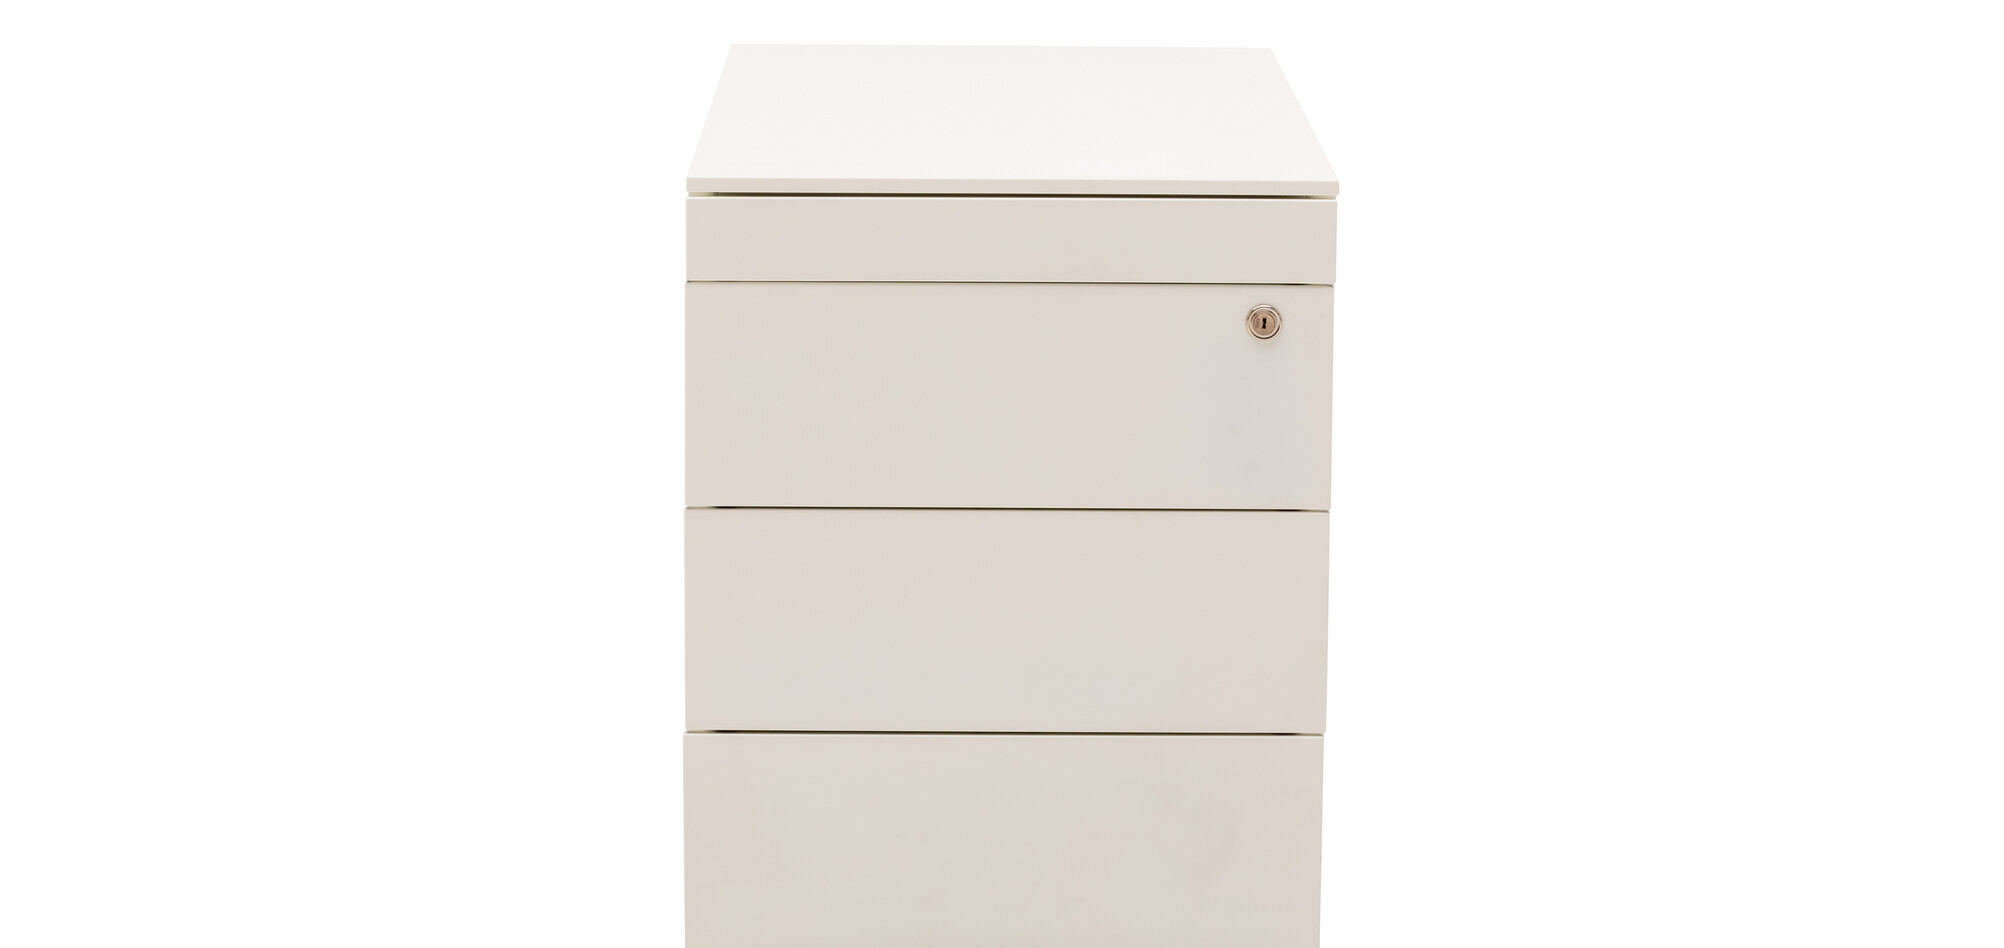 Royal Ahrend Pedestal 2202 in white front view